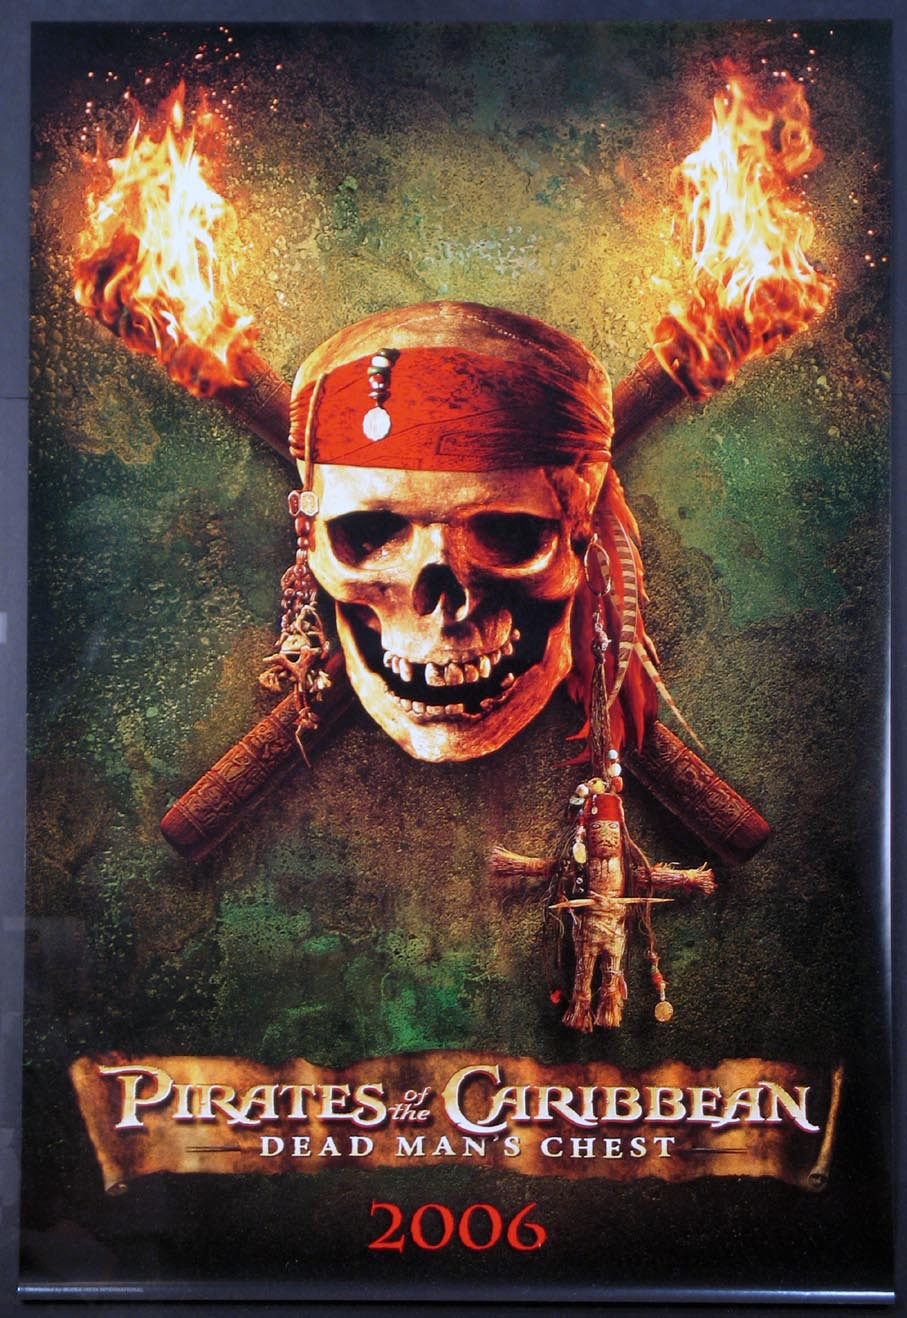 PIRATES OF THE CARIBBEAN: DEAD MAN'S CHEST @ FilmPosters.com